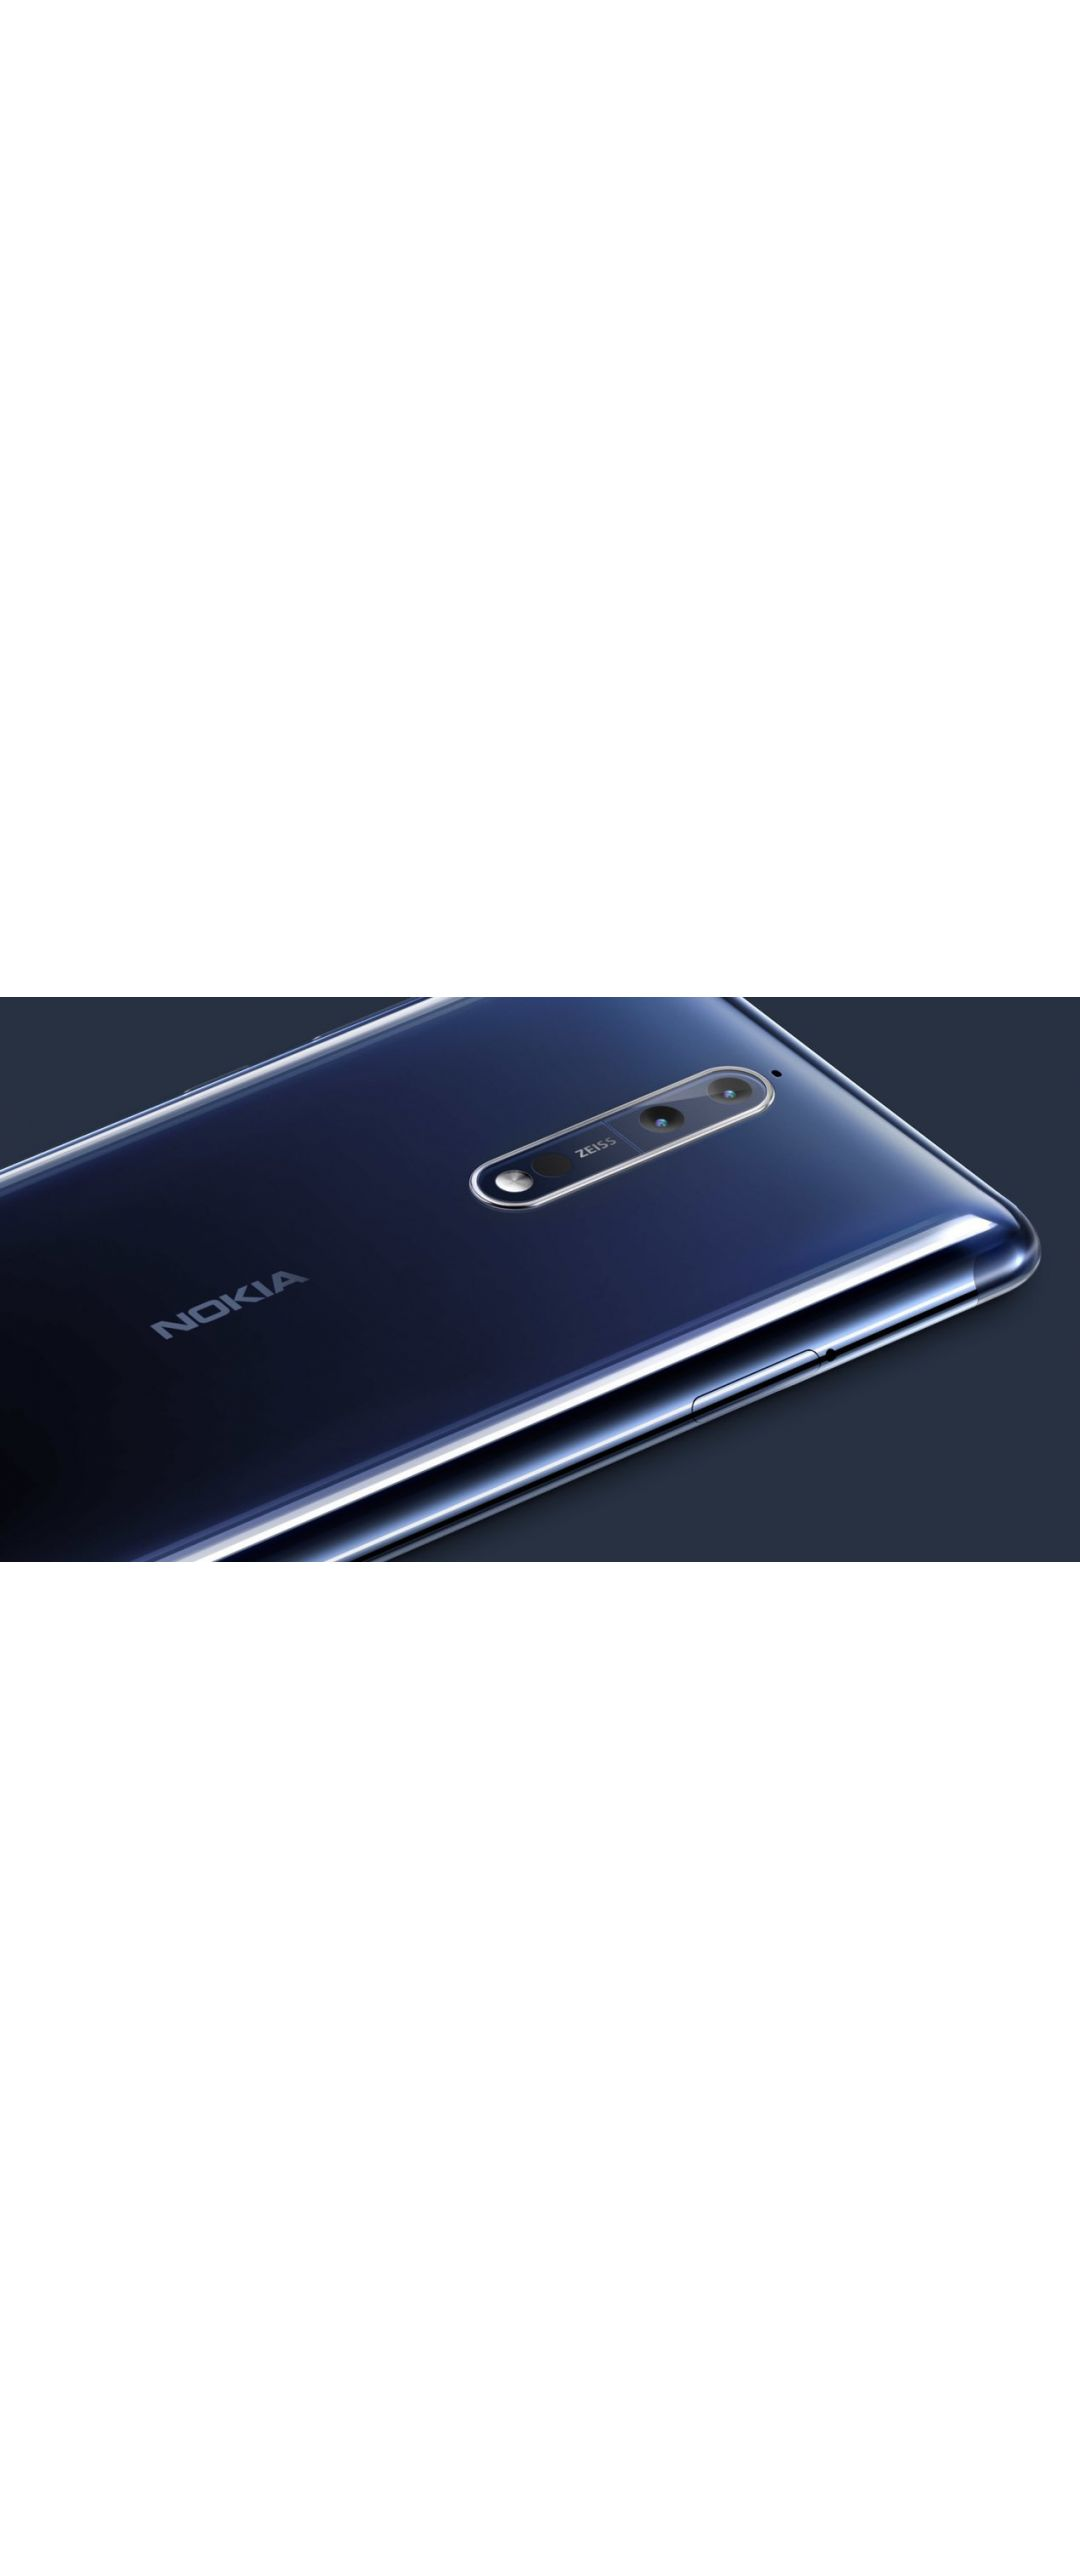 Nokia 8: disponible programa beta de Android 8.0 Oreo